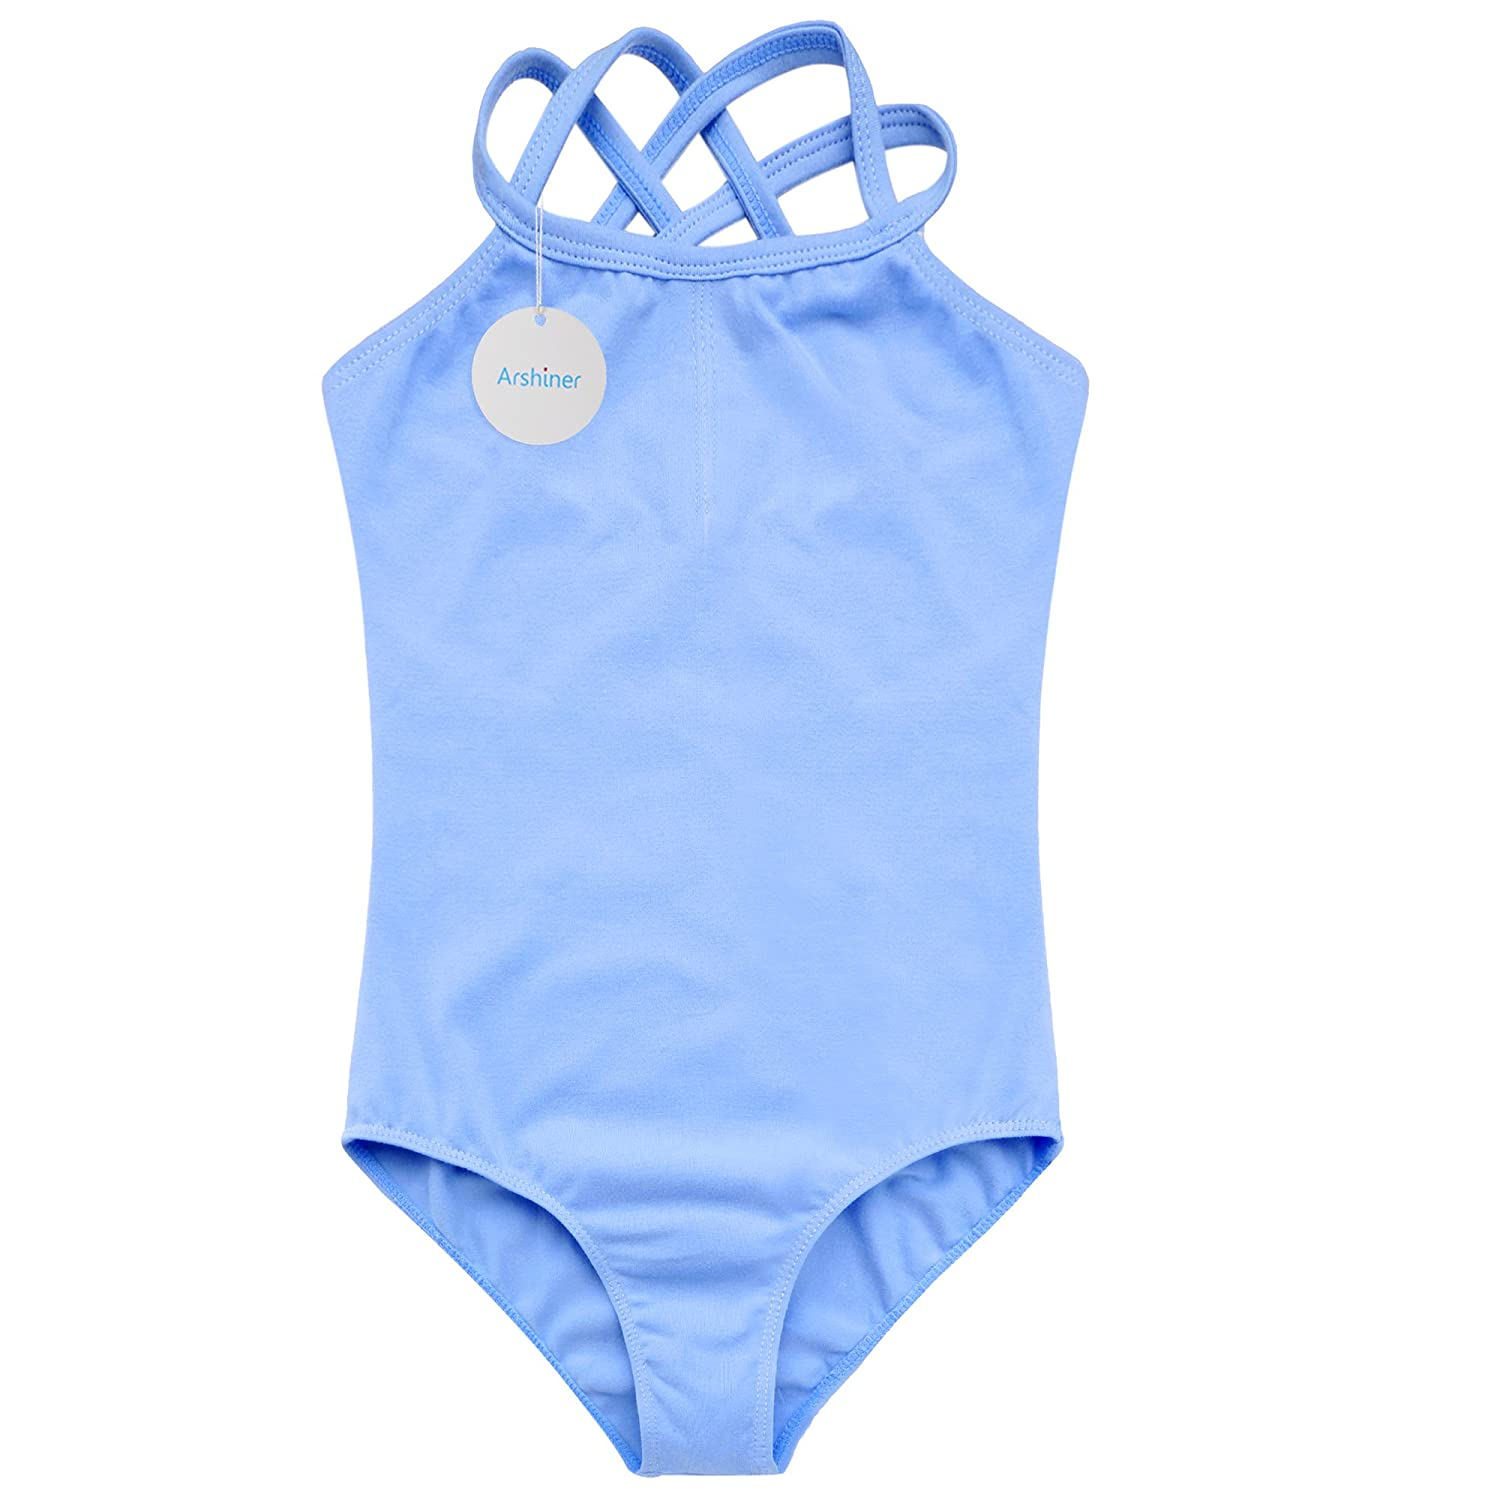 30157e690 Arshiner Kids Girl s Double Strap Slim Solid Camisole Leotard ...